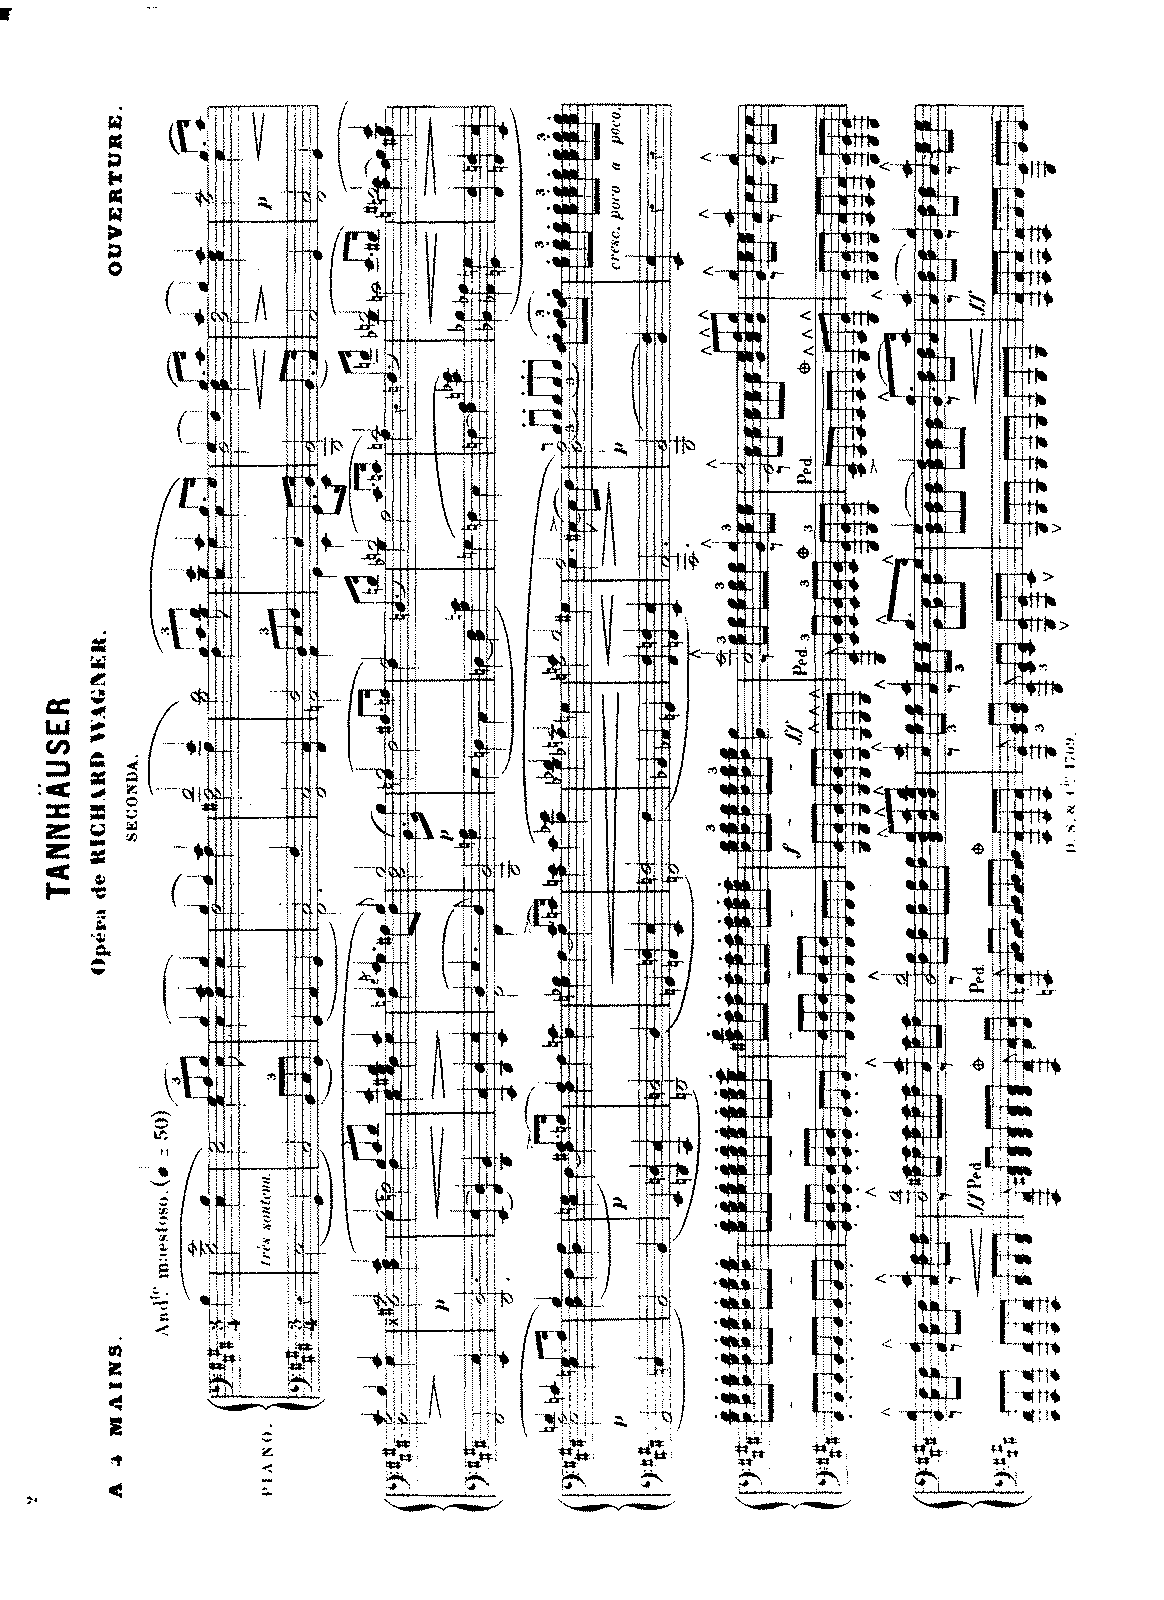 Wagner Tannhauser 1 Ouverture piano 4 hands.pdf